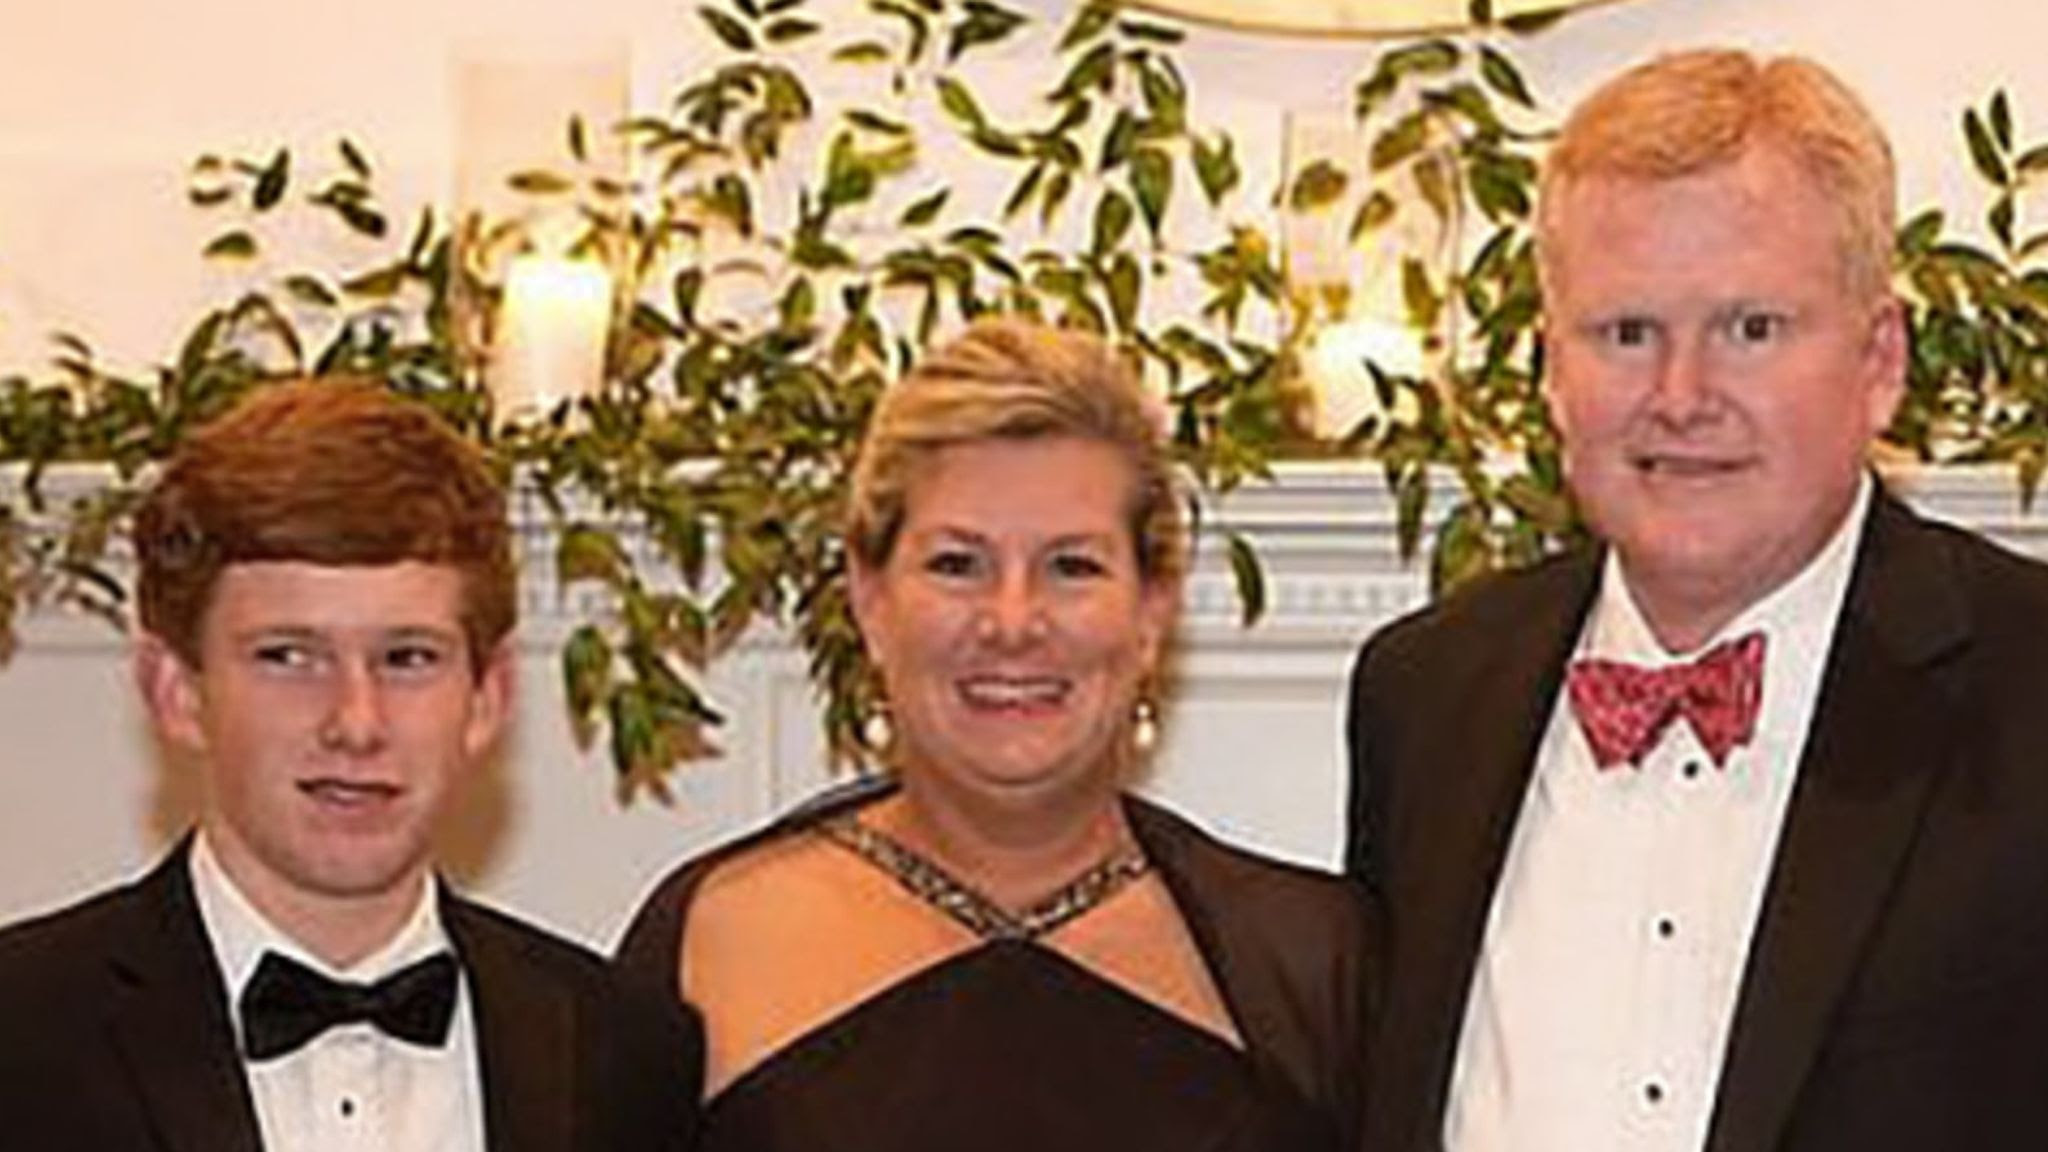 Alex Murdaugh: Lawyer accused of arranging own shooting for $10m insurance payout months after murder of wife and son